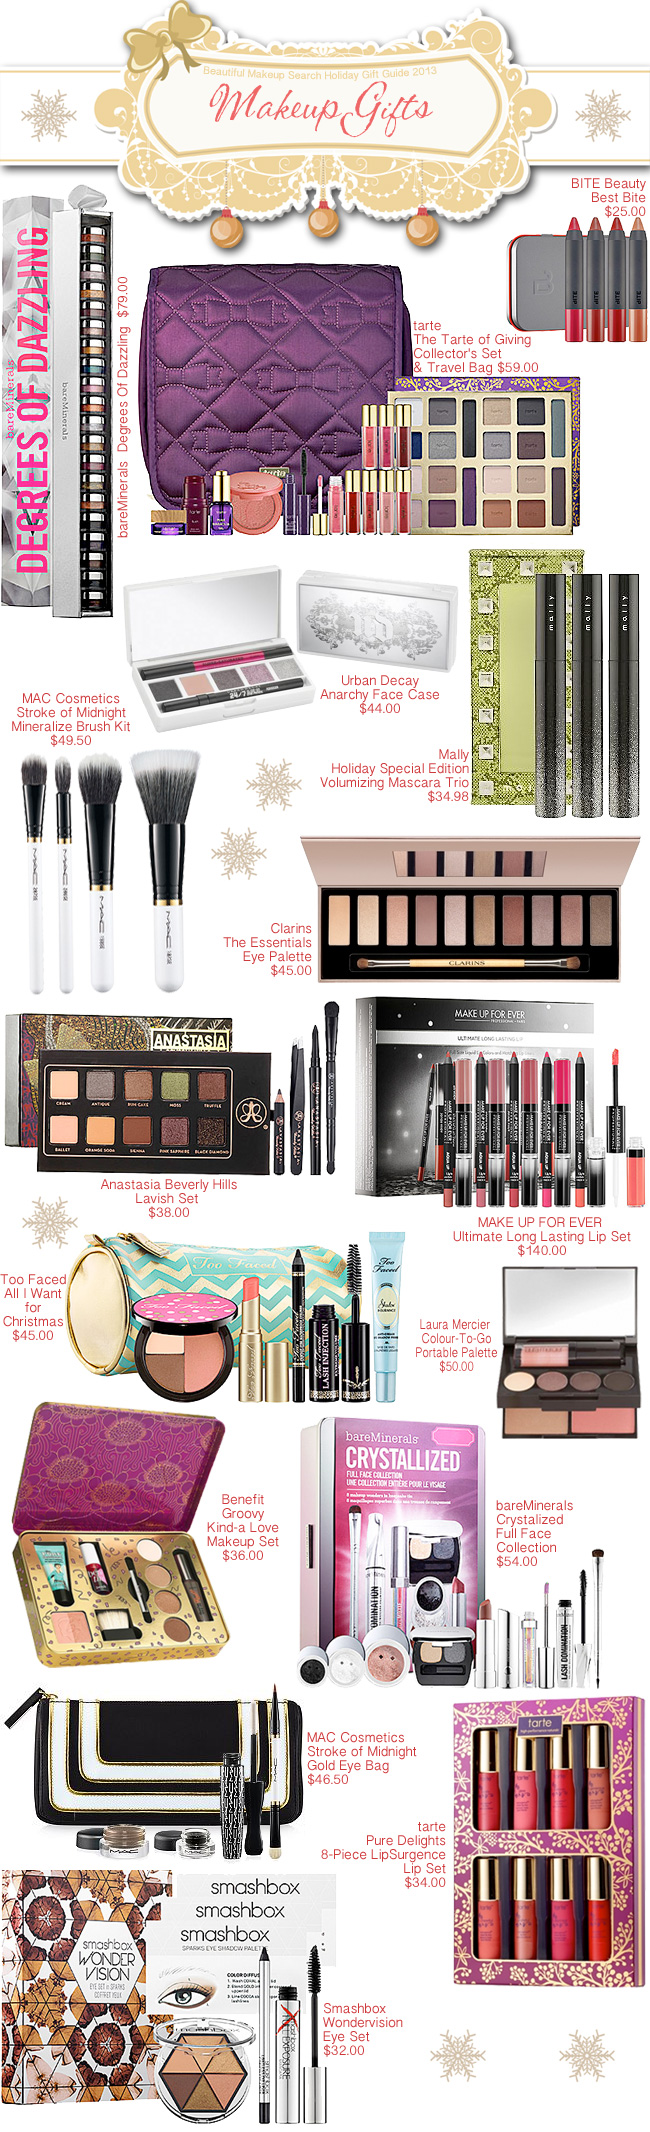 Beautiful Makeup Search Holiday Gift Guide - Makeup Gifts